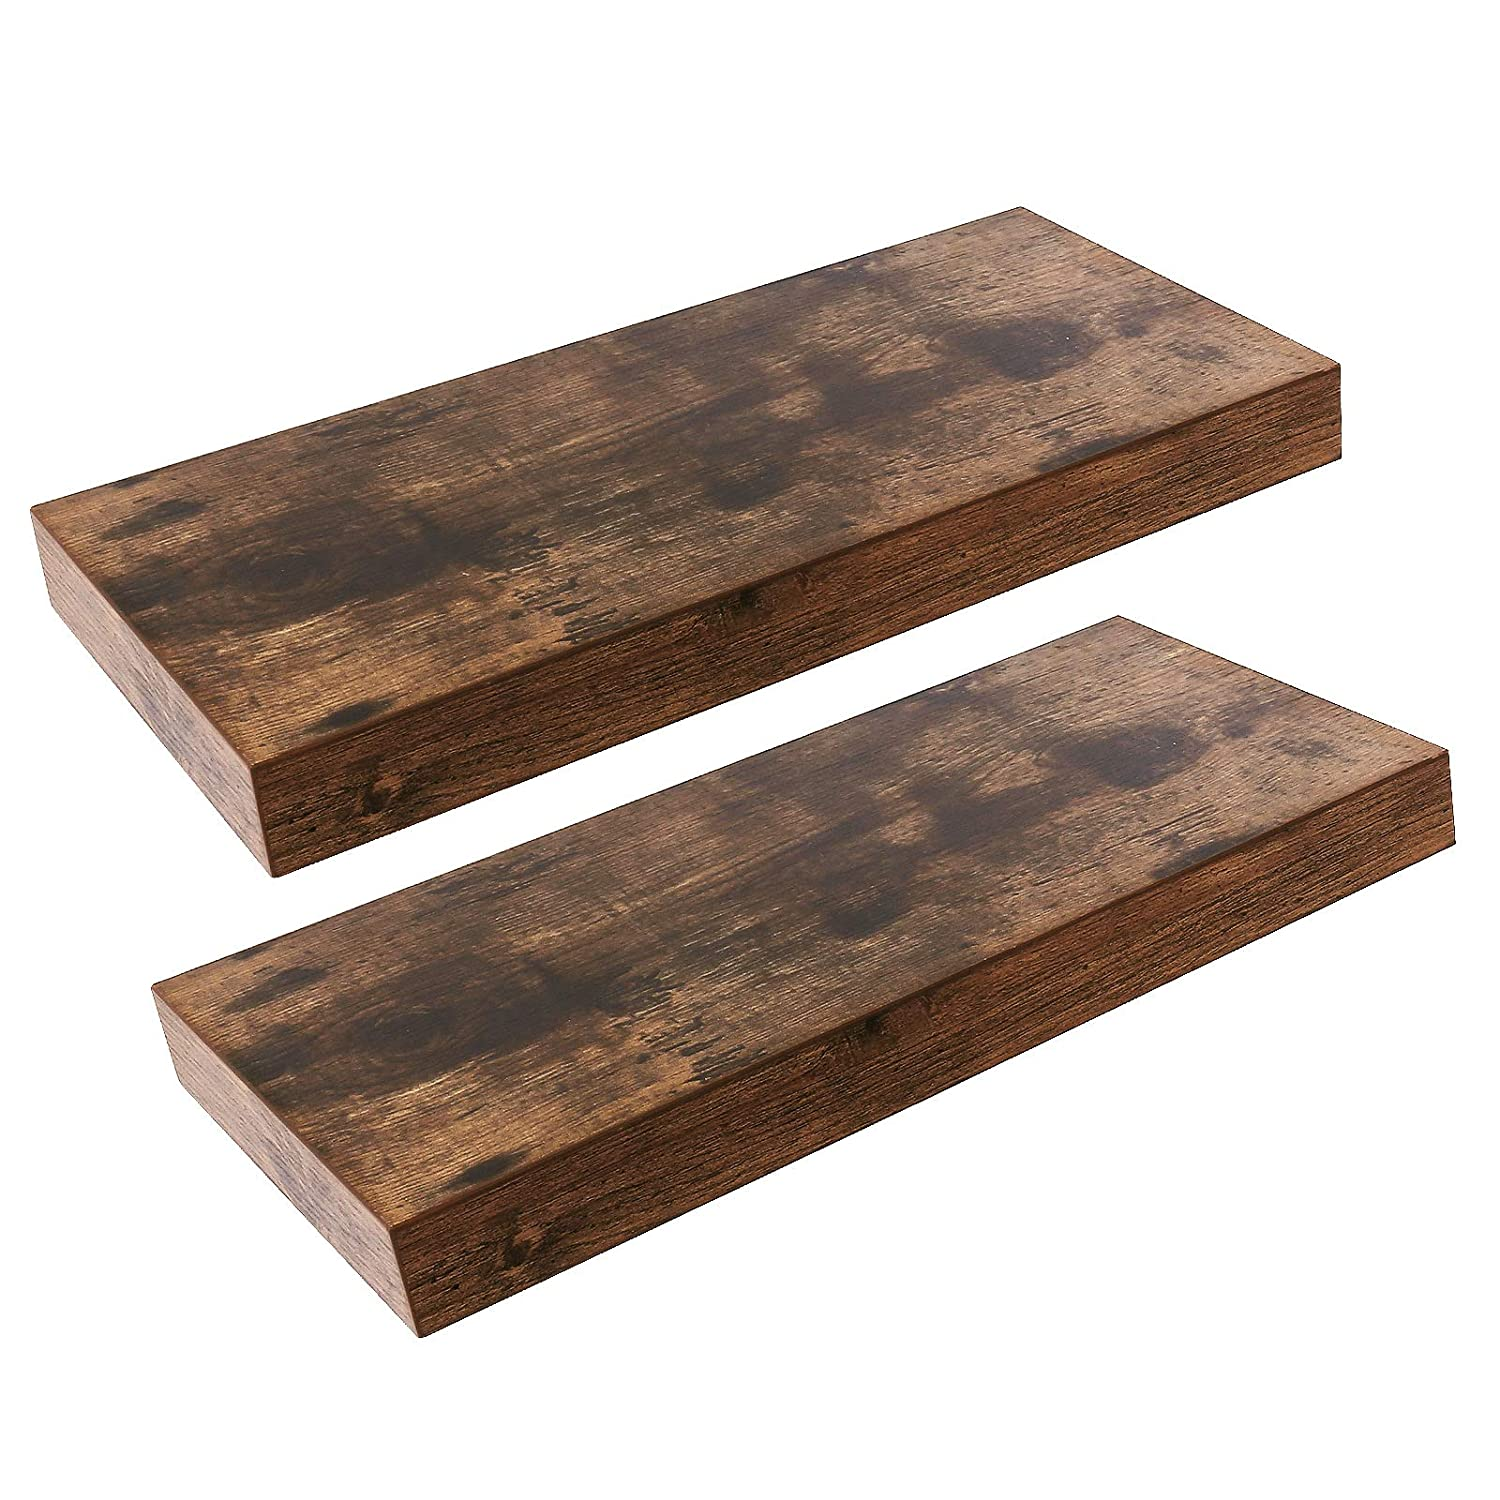 HOOBRO Floating Shelves, Rustic Wooden Wall ShelfSet of 2, 15.7 inch Hanging Shelf with Invisible Brackets, for Bathroom, Bedroom, Toilet, Kitchen, Office, Living Room Decor